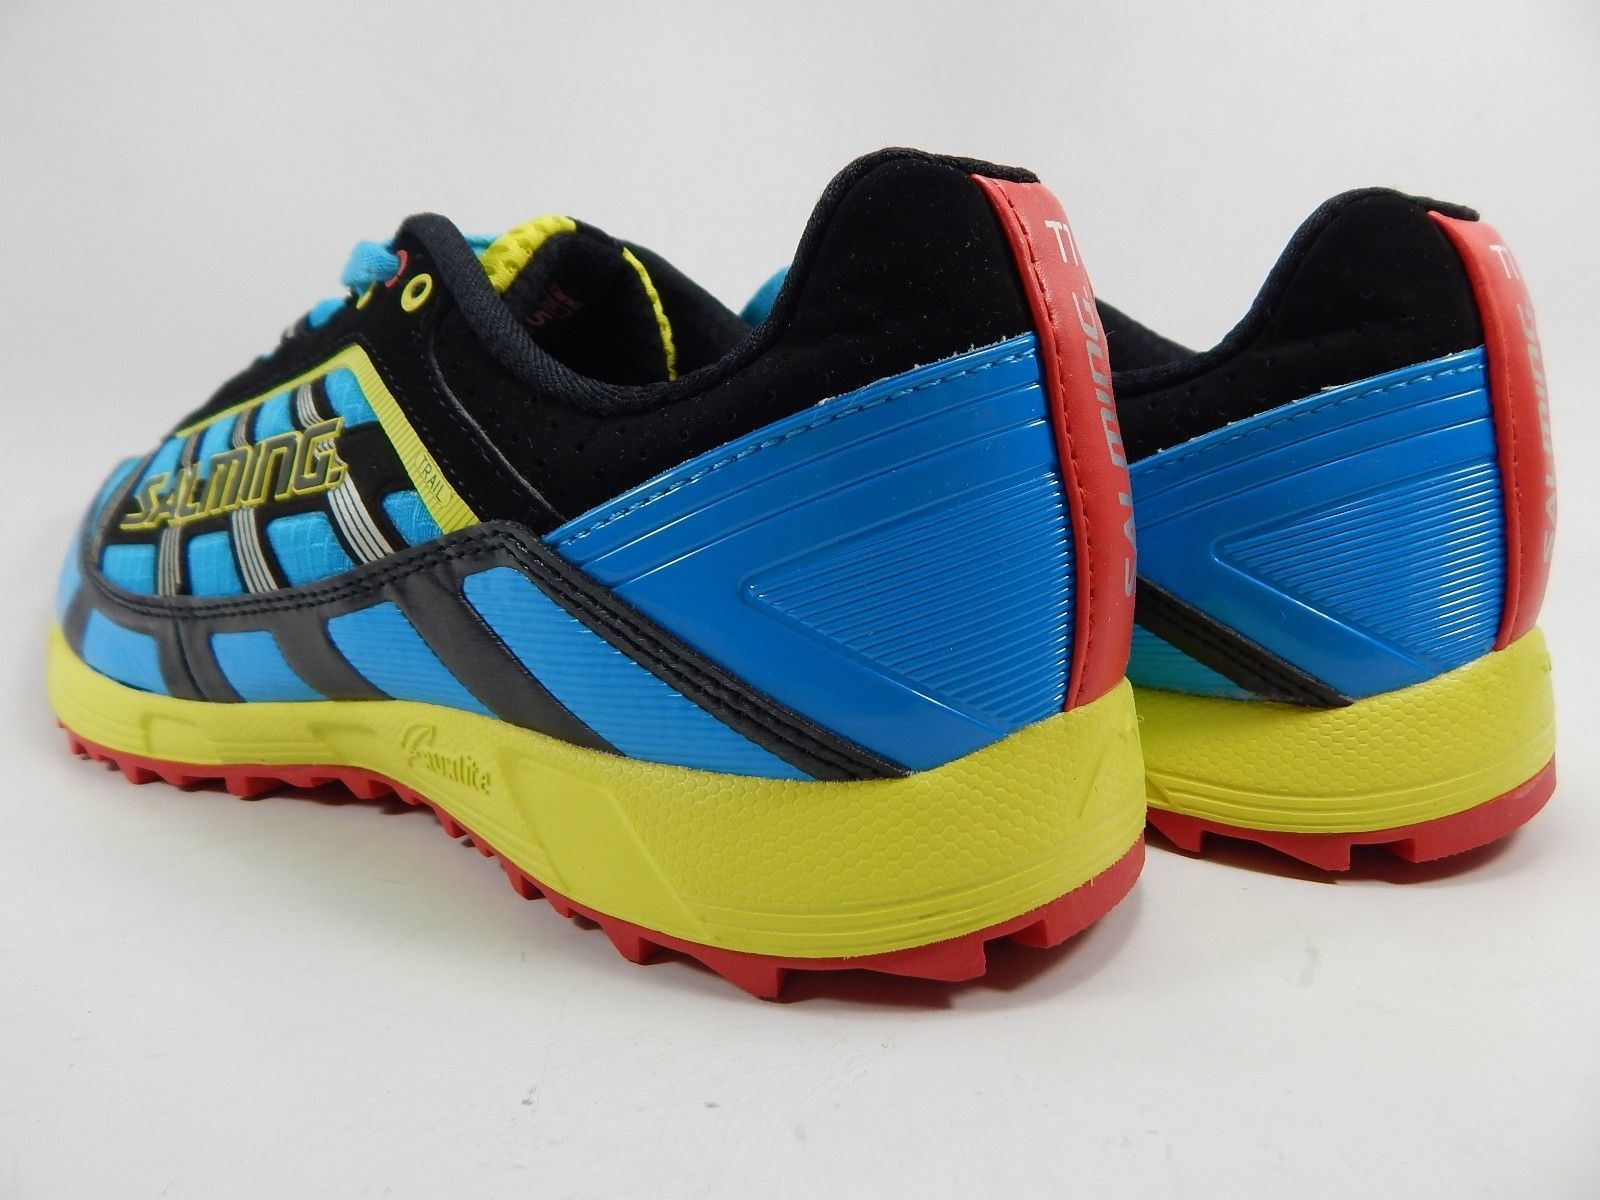 Salming Trail T1 Men's Running Shoes Size US 9.5 M (D) EU 43 1/3 Blue Red